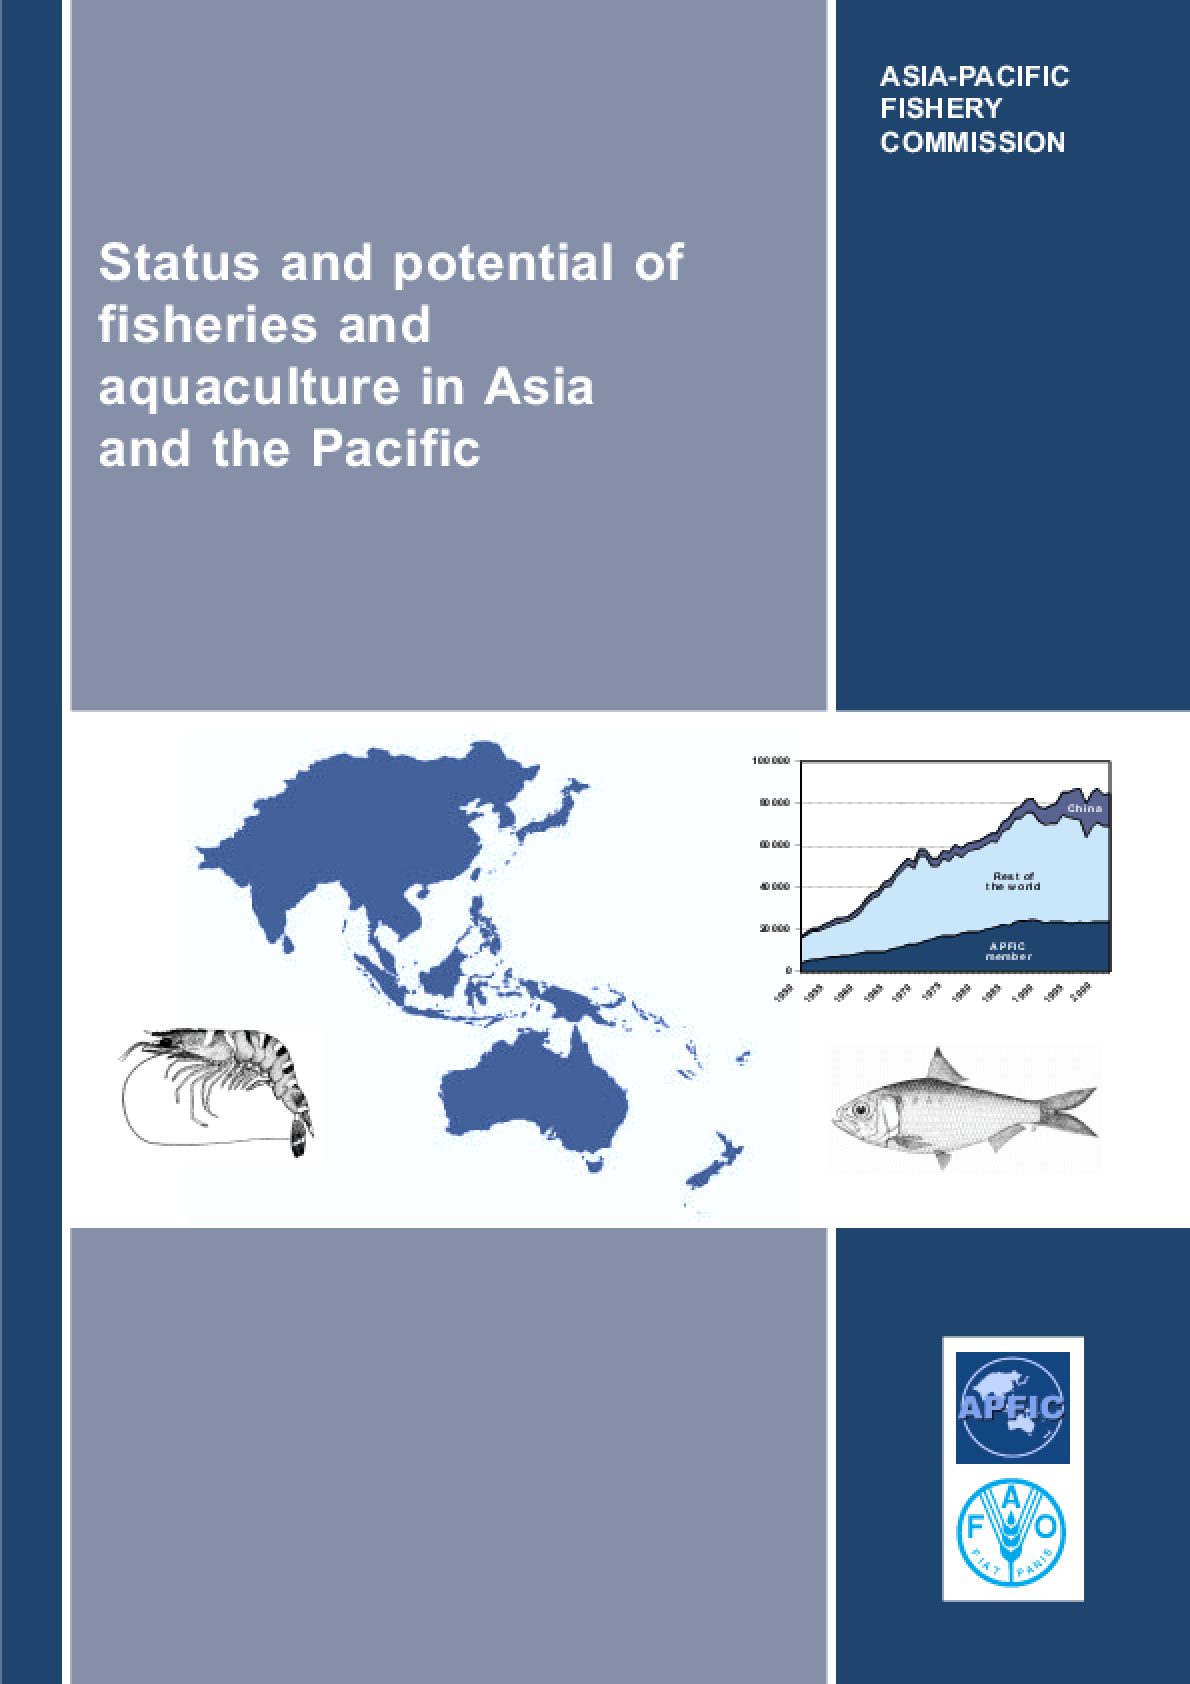 Status and Potential of Fisheries and Aquaculture in Asia and the Pacific 2006